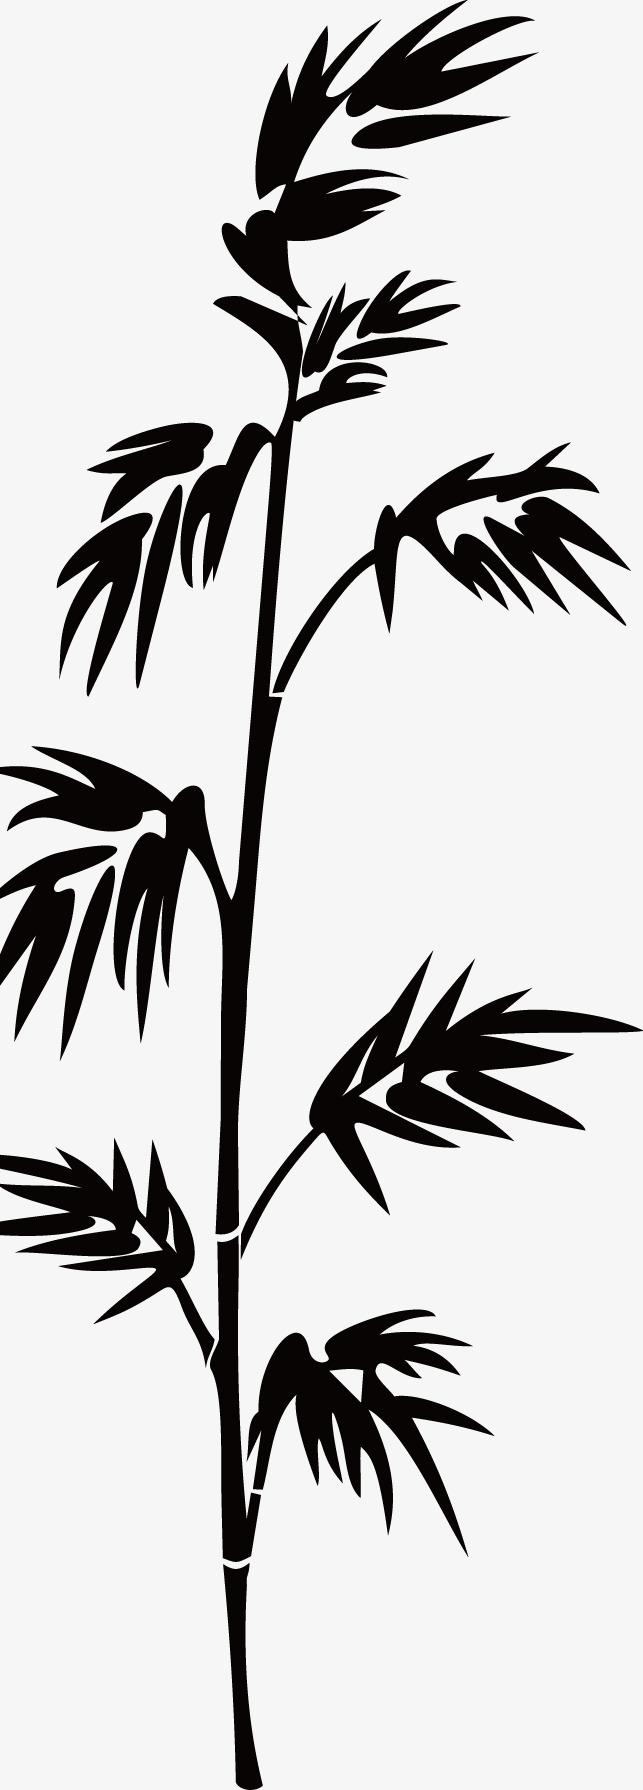 643x1790 Black Bamboo Silhouette, Bamboo, Black, Sketch Png Image